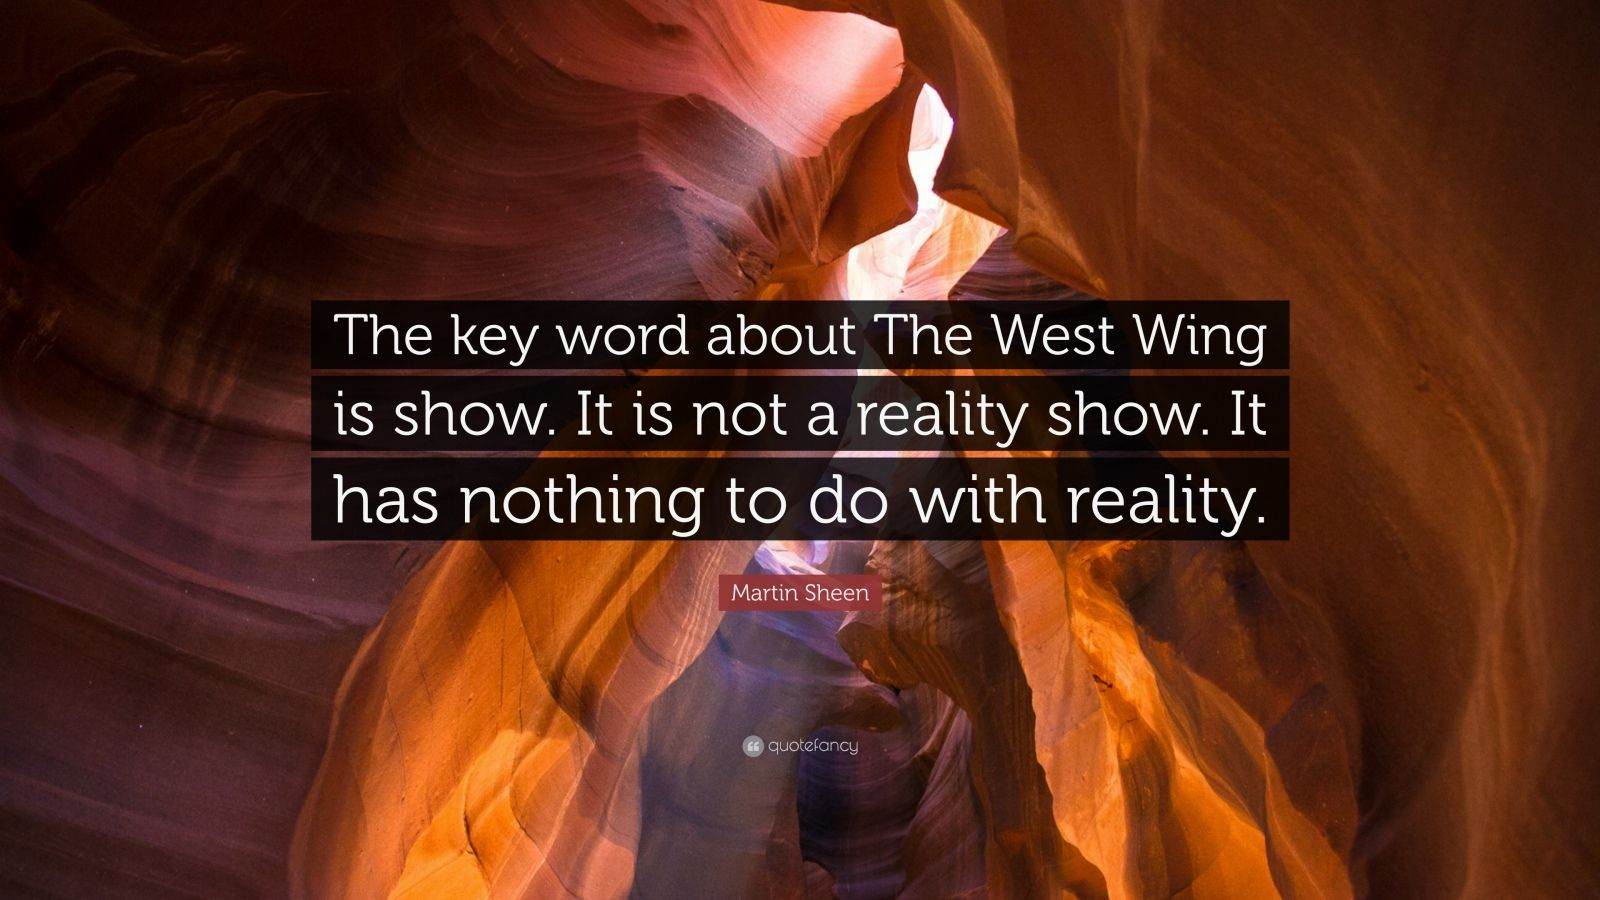 """Martin Sheen Quote: """"The key word about The West Wing is show. It is not a reality show. It has nothing to do with reality."""""""